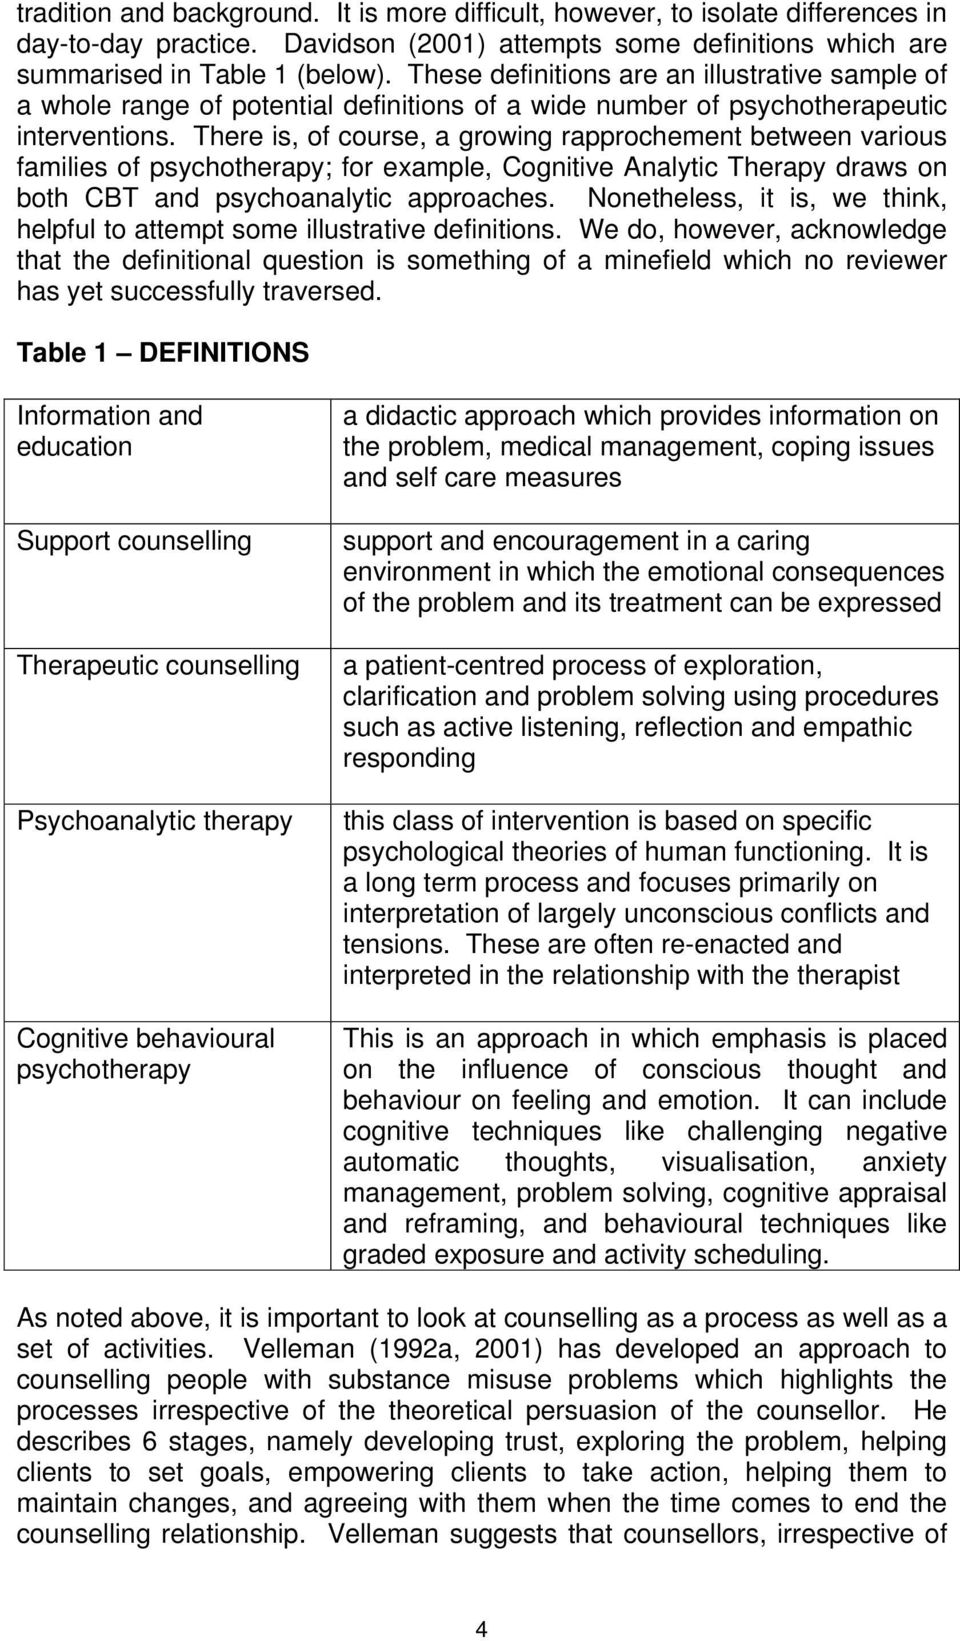 There is, of course, a growing rapprochement between various families of psychotherapy; for example, Cognitive Analytic Therapy draws on both CBT and psychoanalytic approaches.